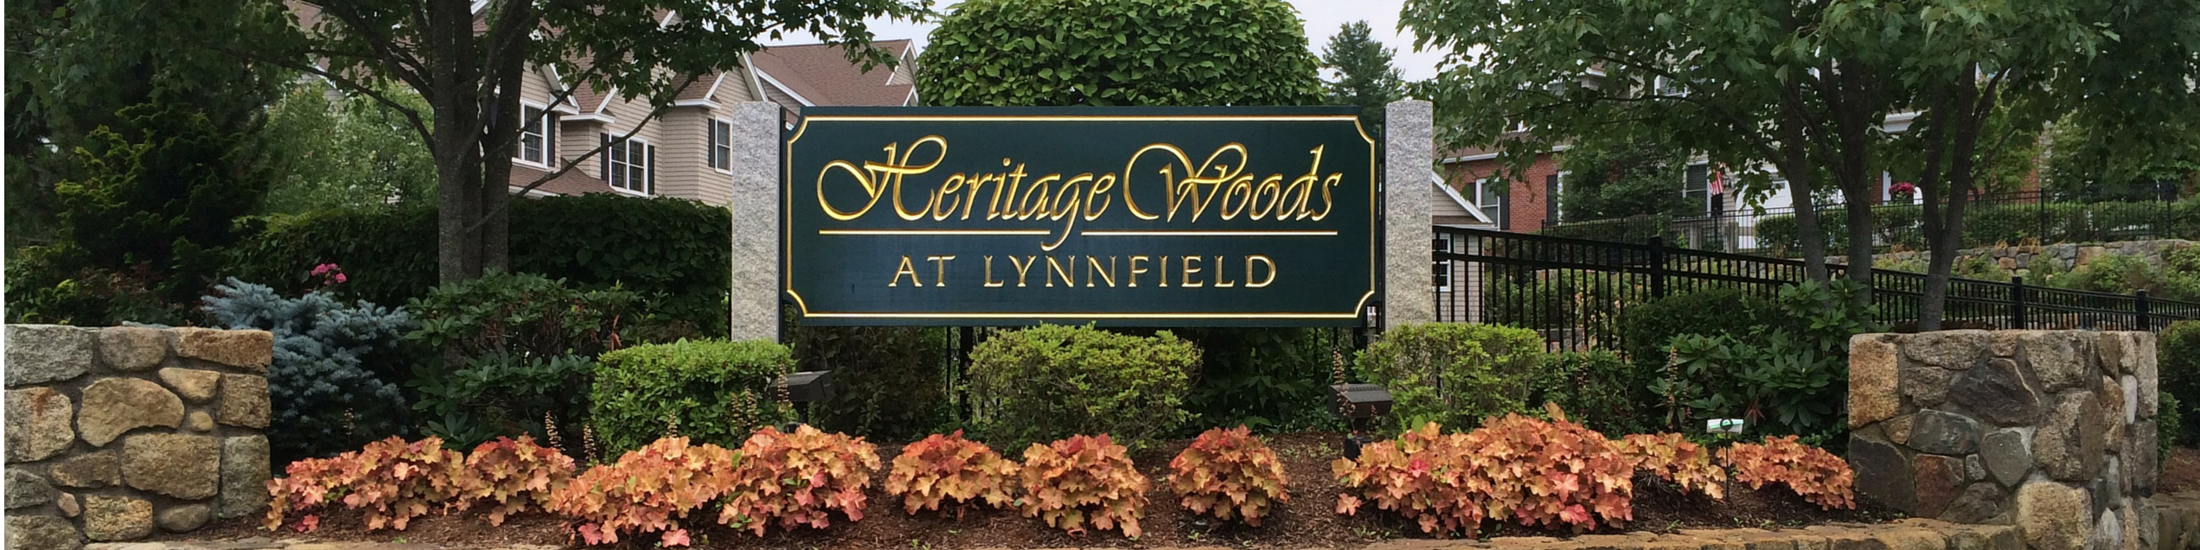 Entrance to Heritage Woods Lynnfield Ma.